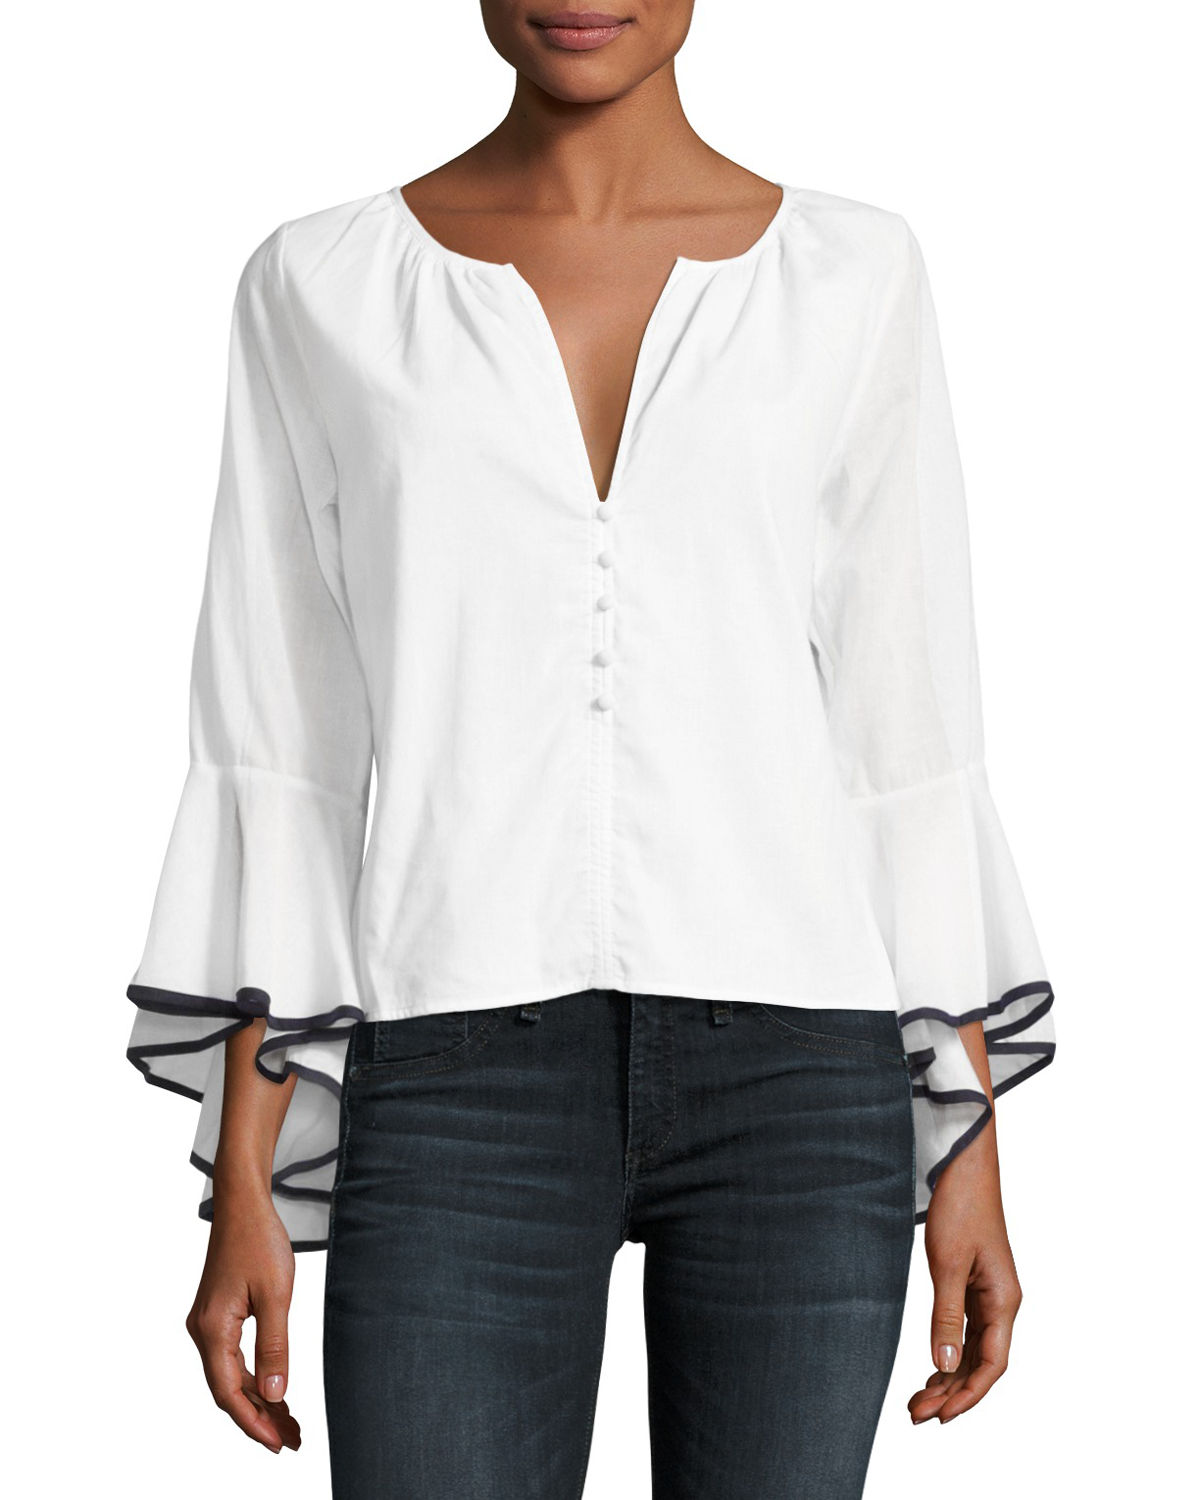 Segall Flared-Sleeve Top